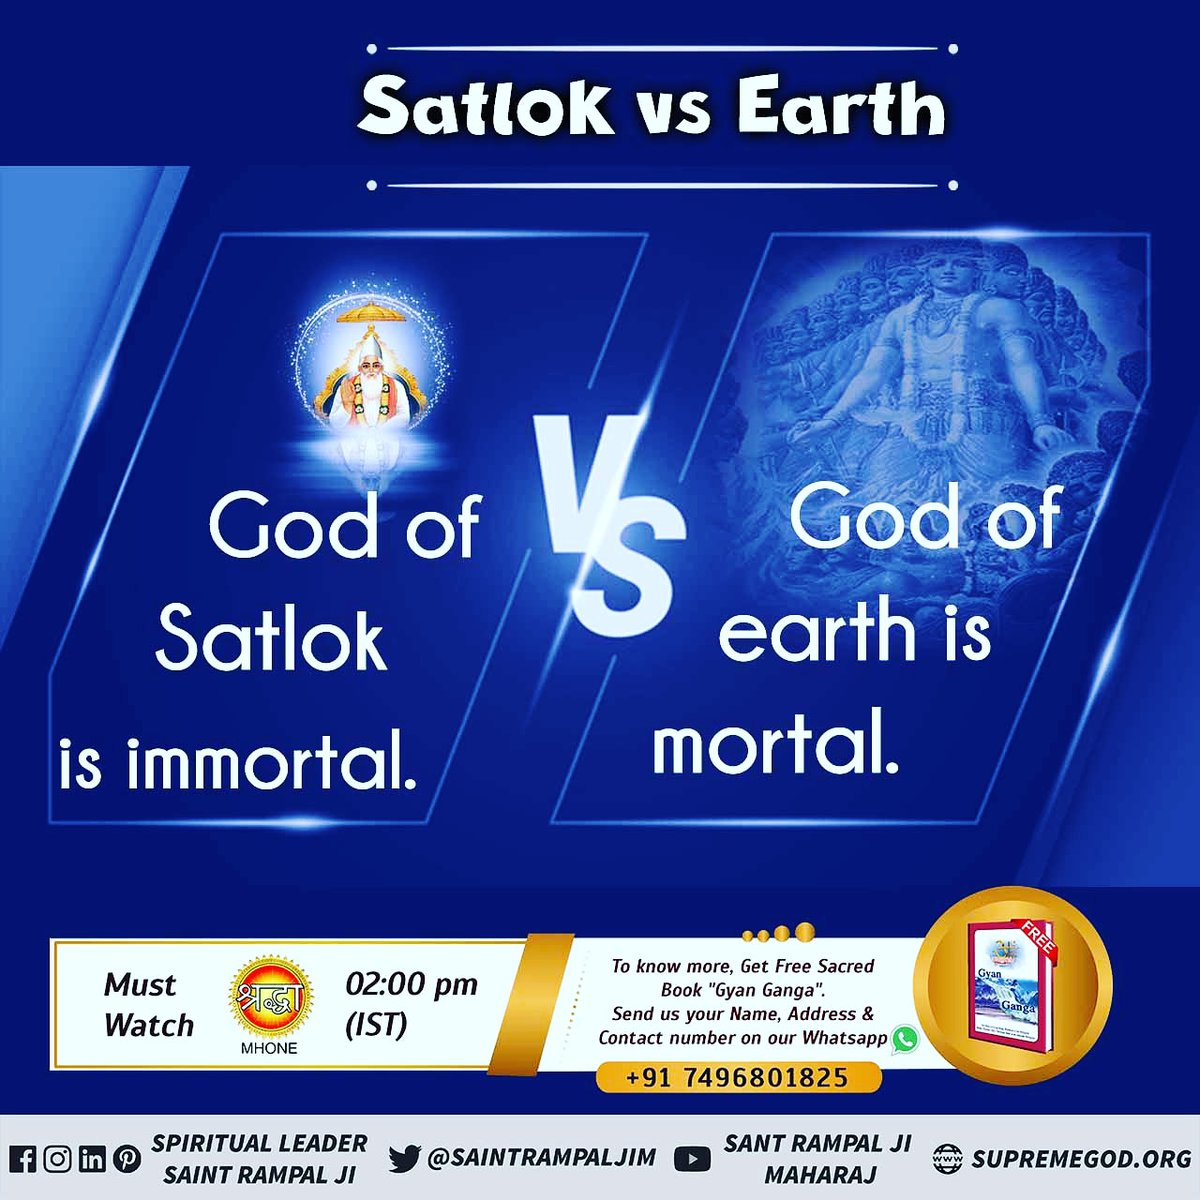 @SaintRampalJiM Every Creature On Earth Is Sad. Satlok is the ocean of happiness. There is no such thing as sorrow. Birth is not death. Not old age.  @SaintRampalJiM For More Information Visit Satlok Ashram YouTube Channel #thursdaymorning #GodMorningThrusday